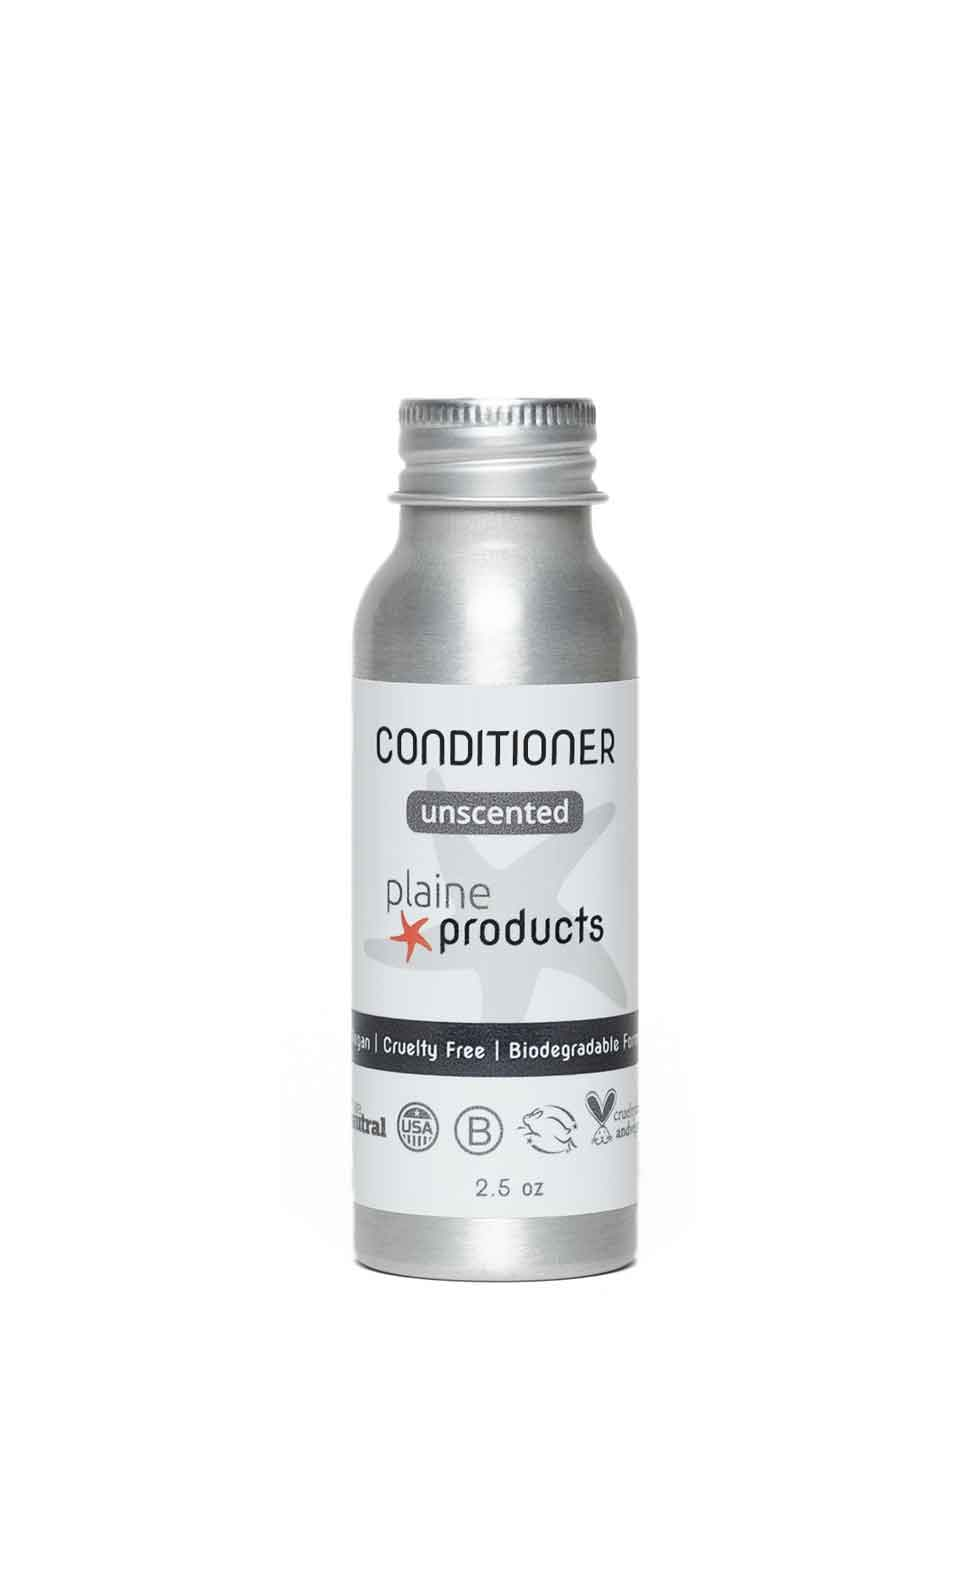 Travel Conditioner Unscented No pump